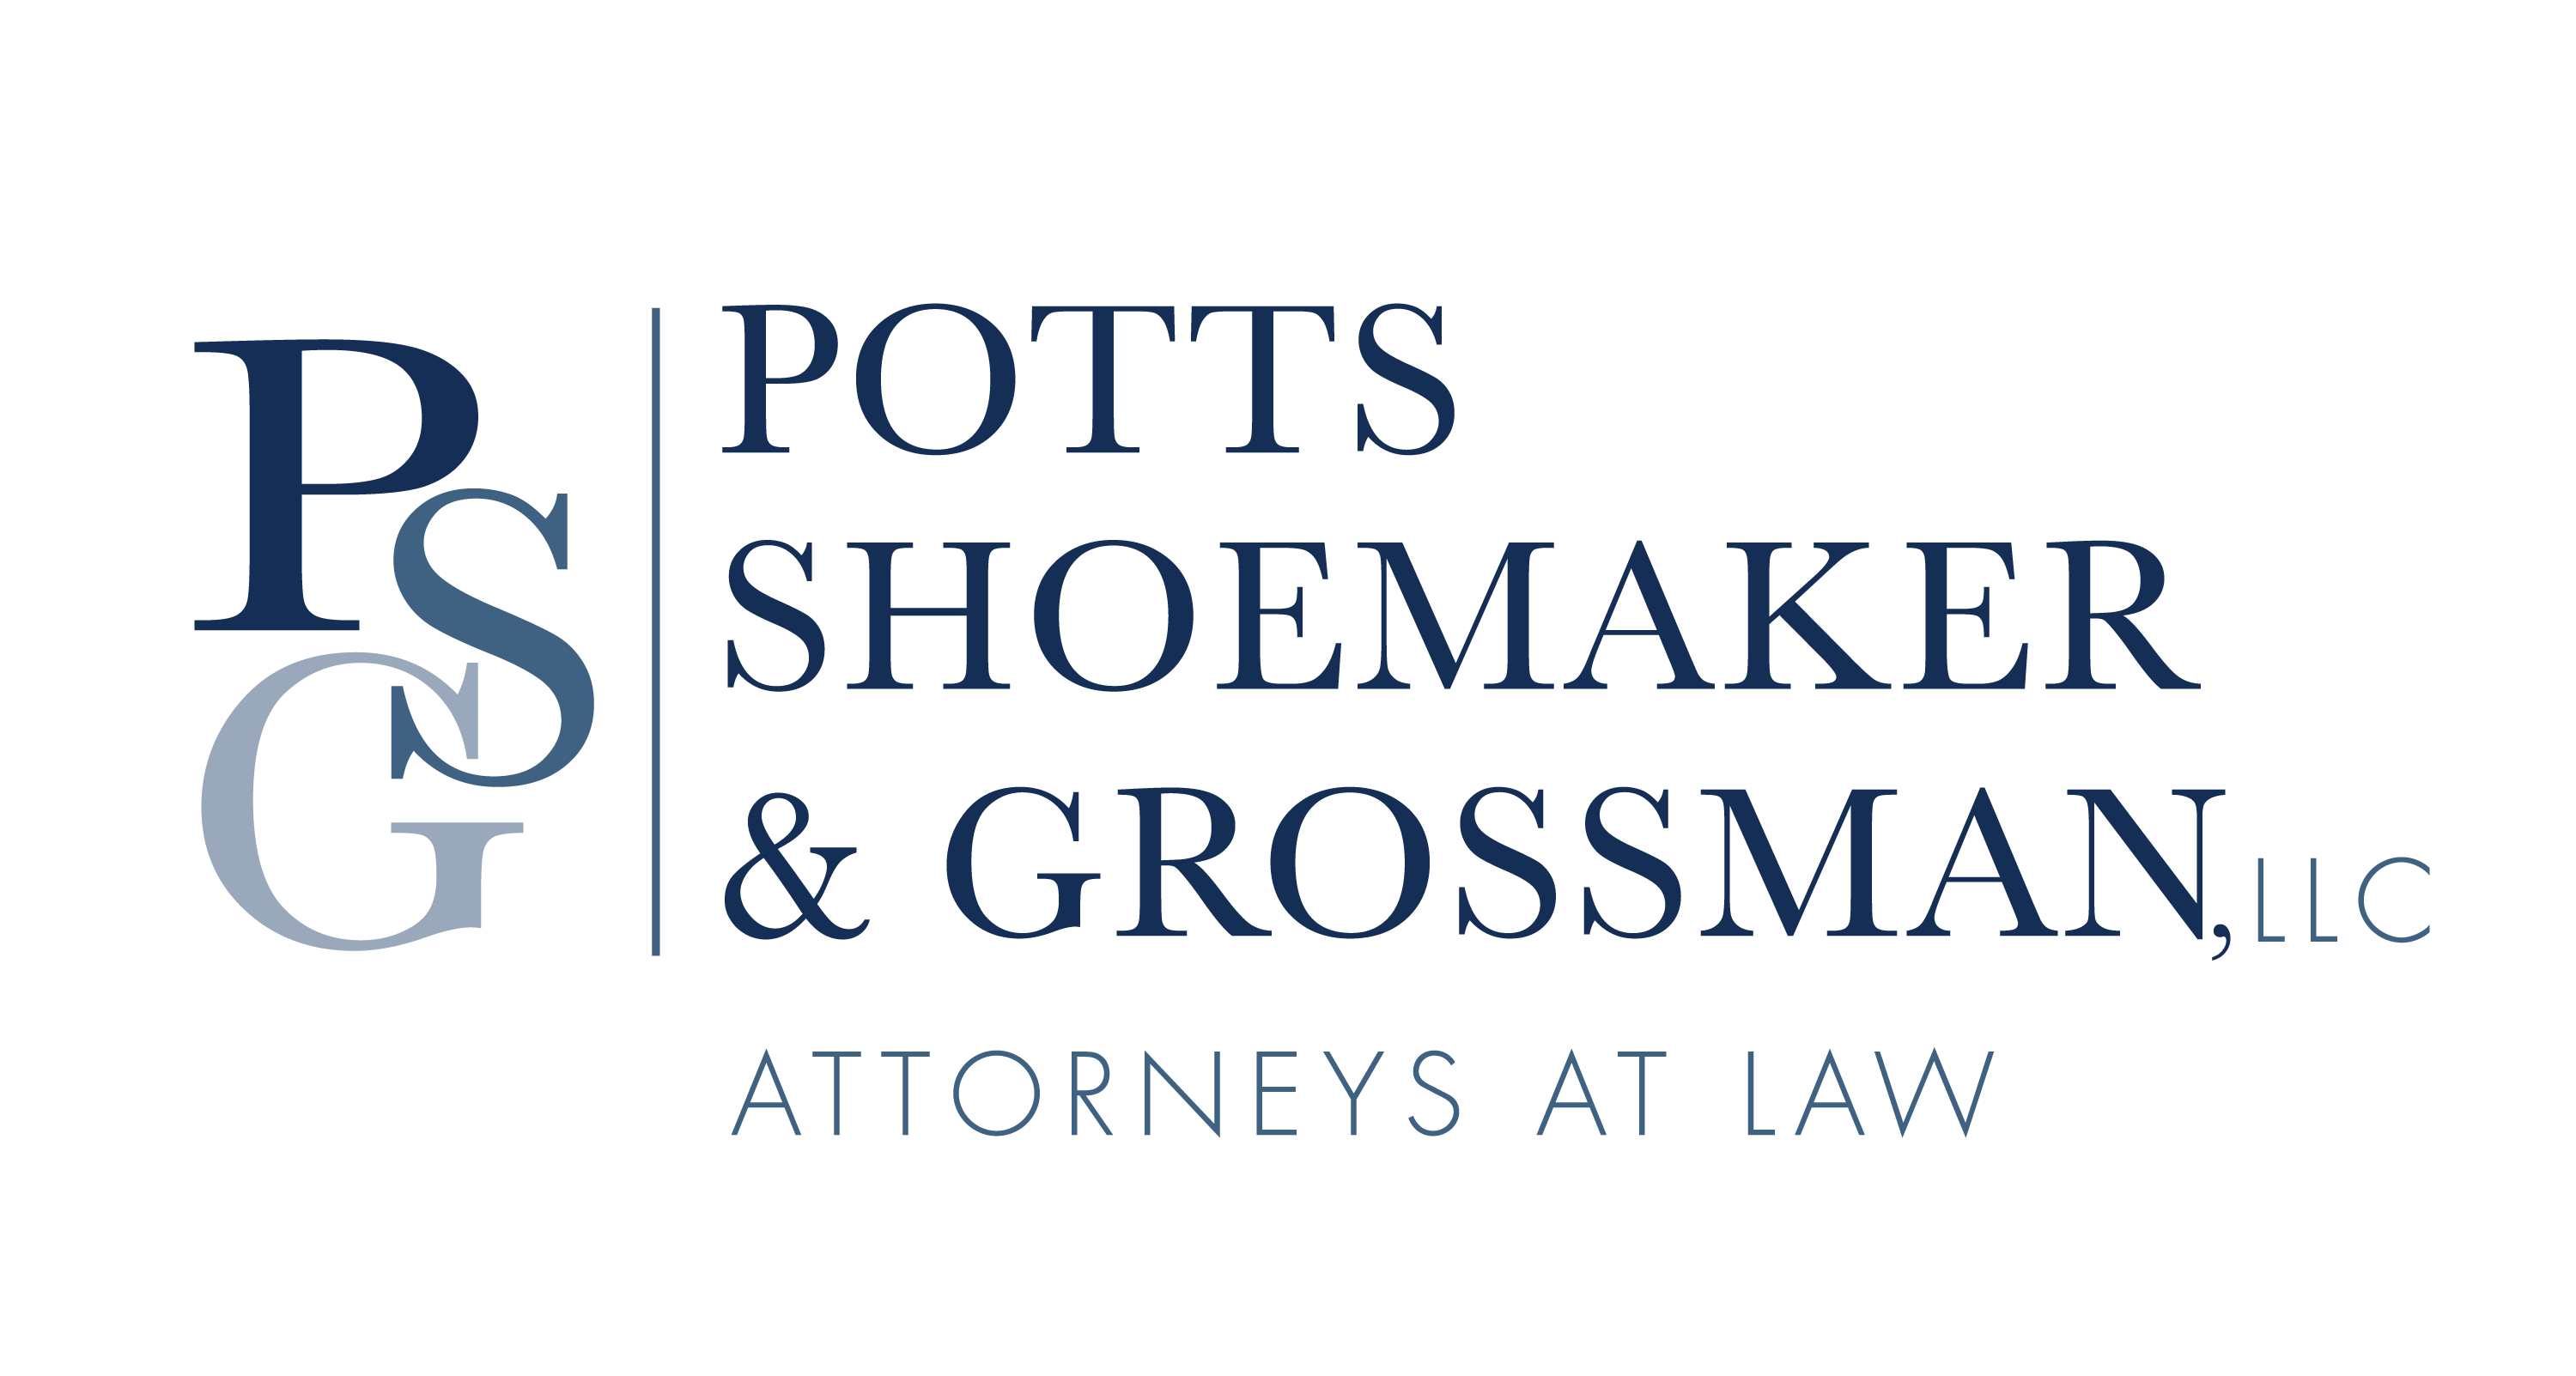 Potts, Shoemaker & Grossman